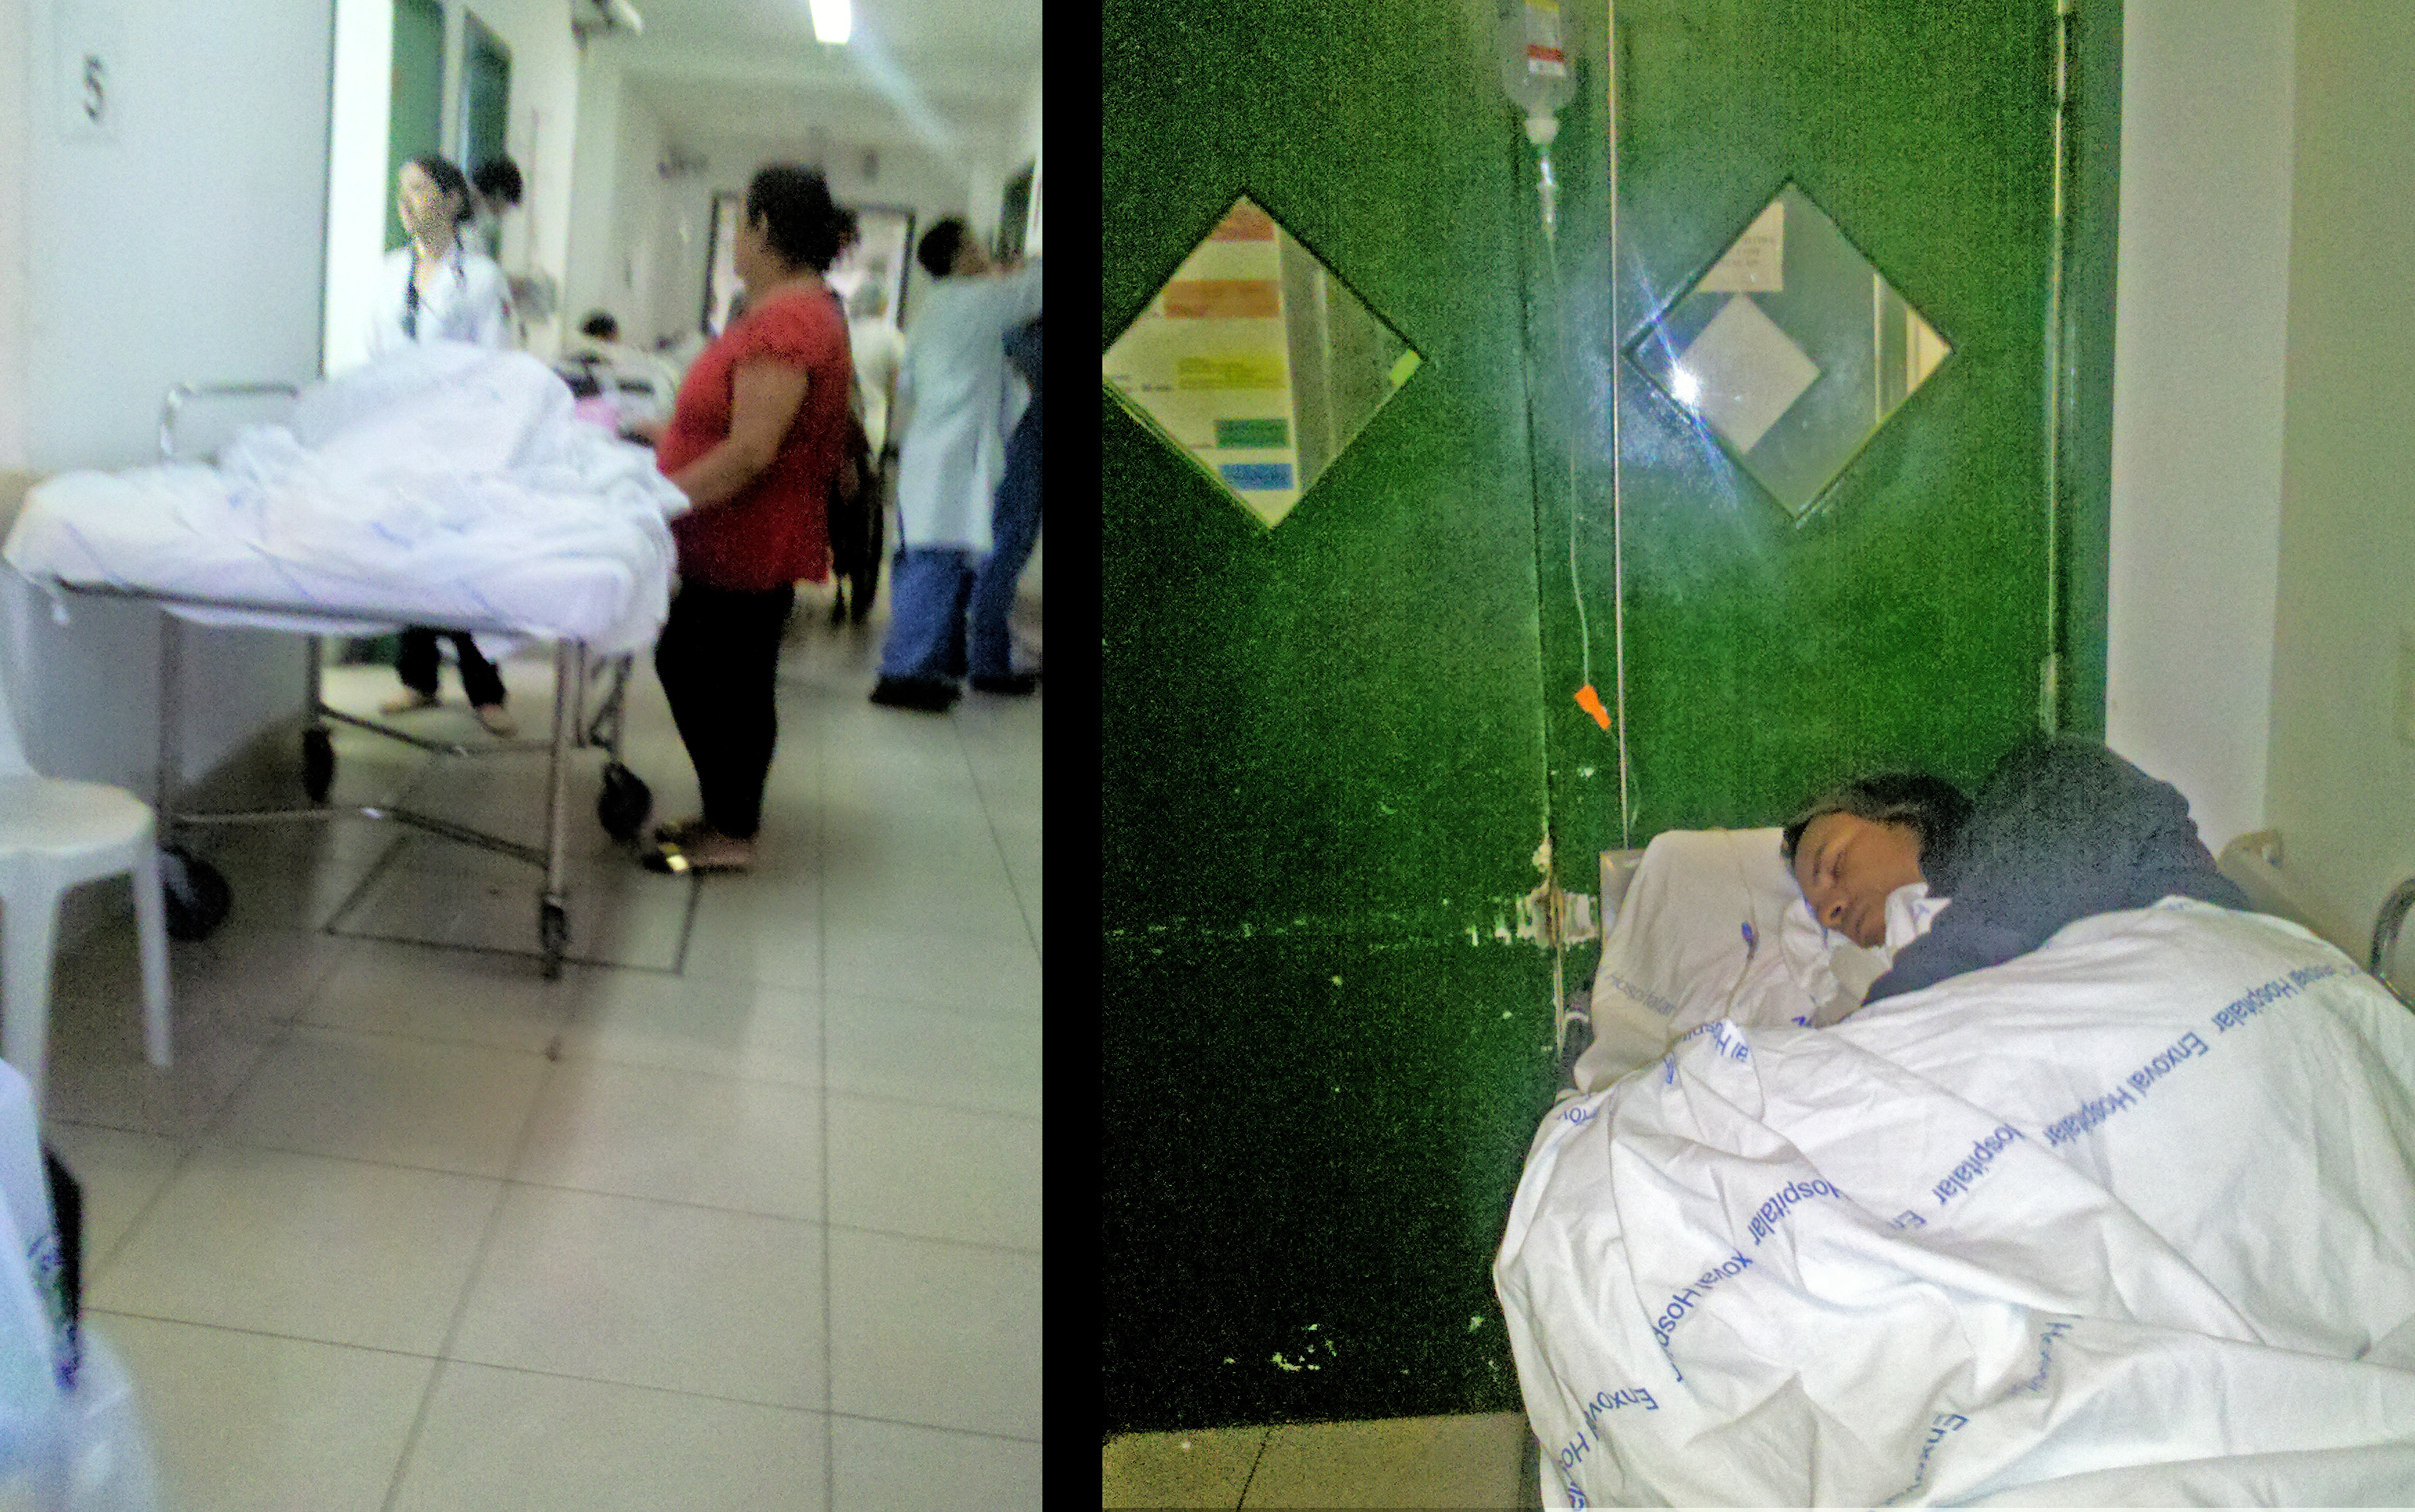 Public Health Care in Brazil